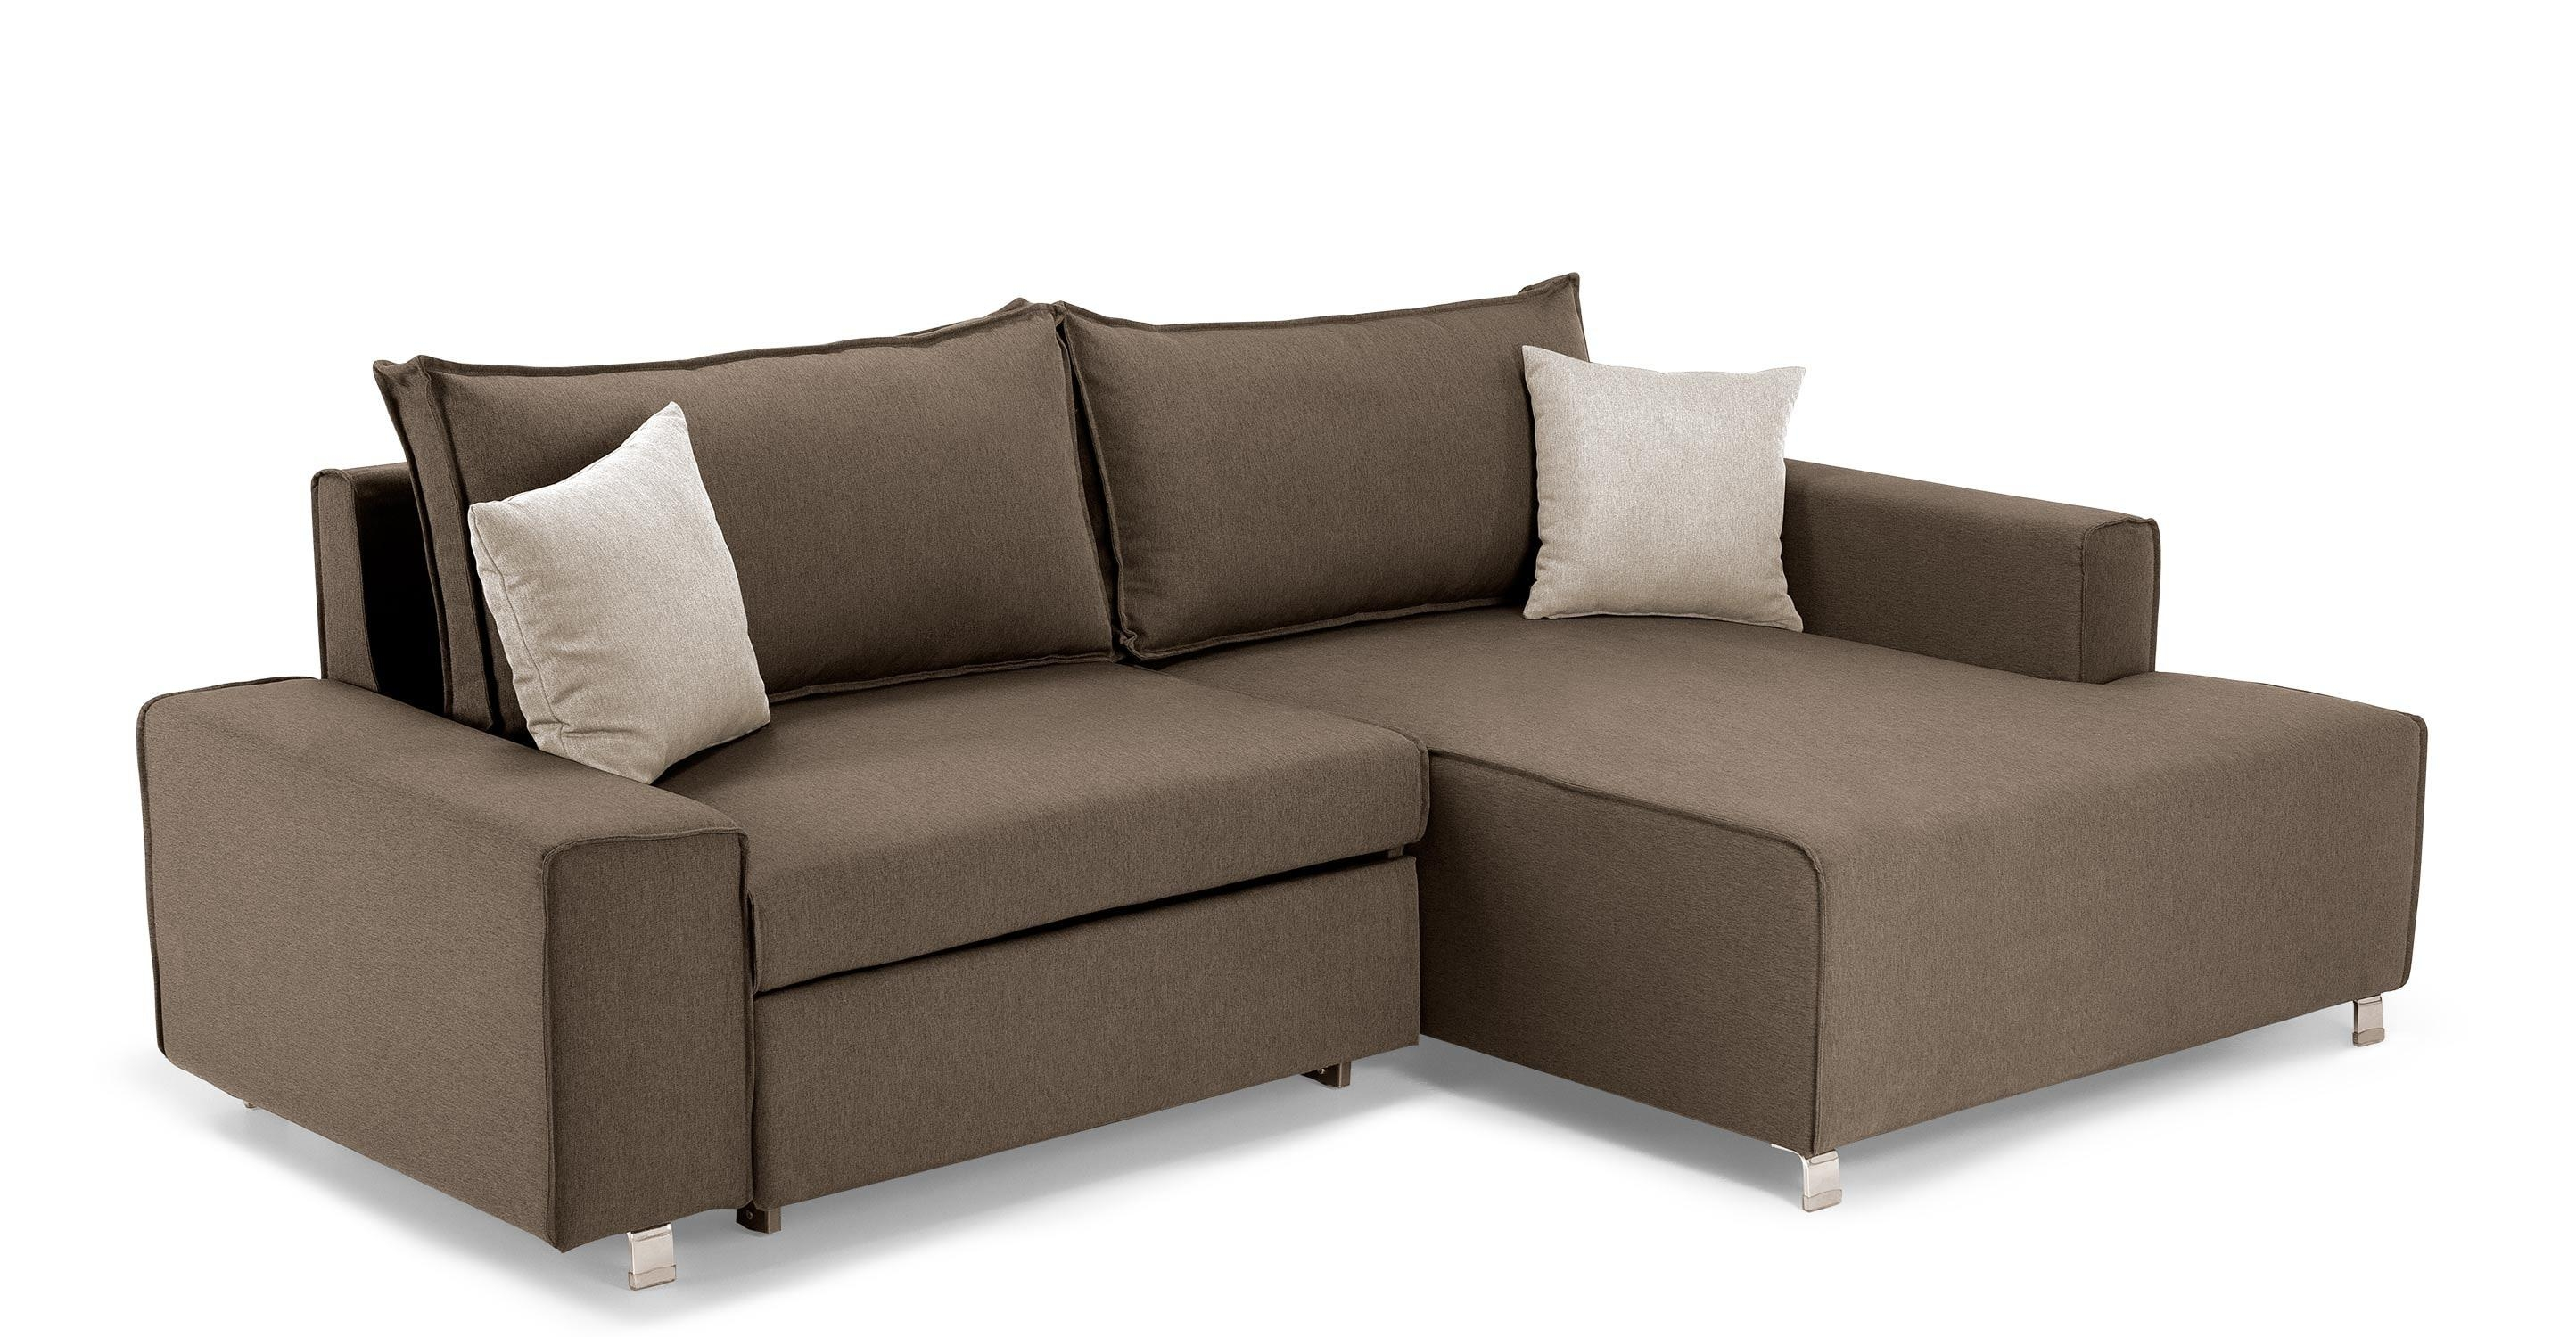 Sofas Center : Corner Sofa Beds Uk Cheap Birminghamcorner For Throughout Cheap Corner Sofa (Image 18 of 20)